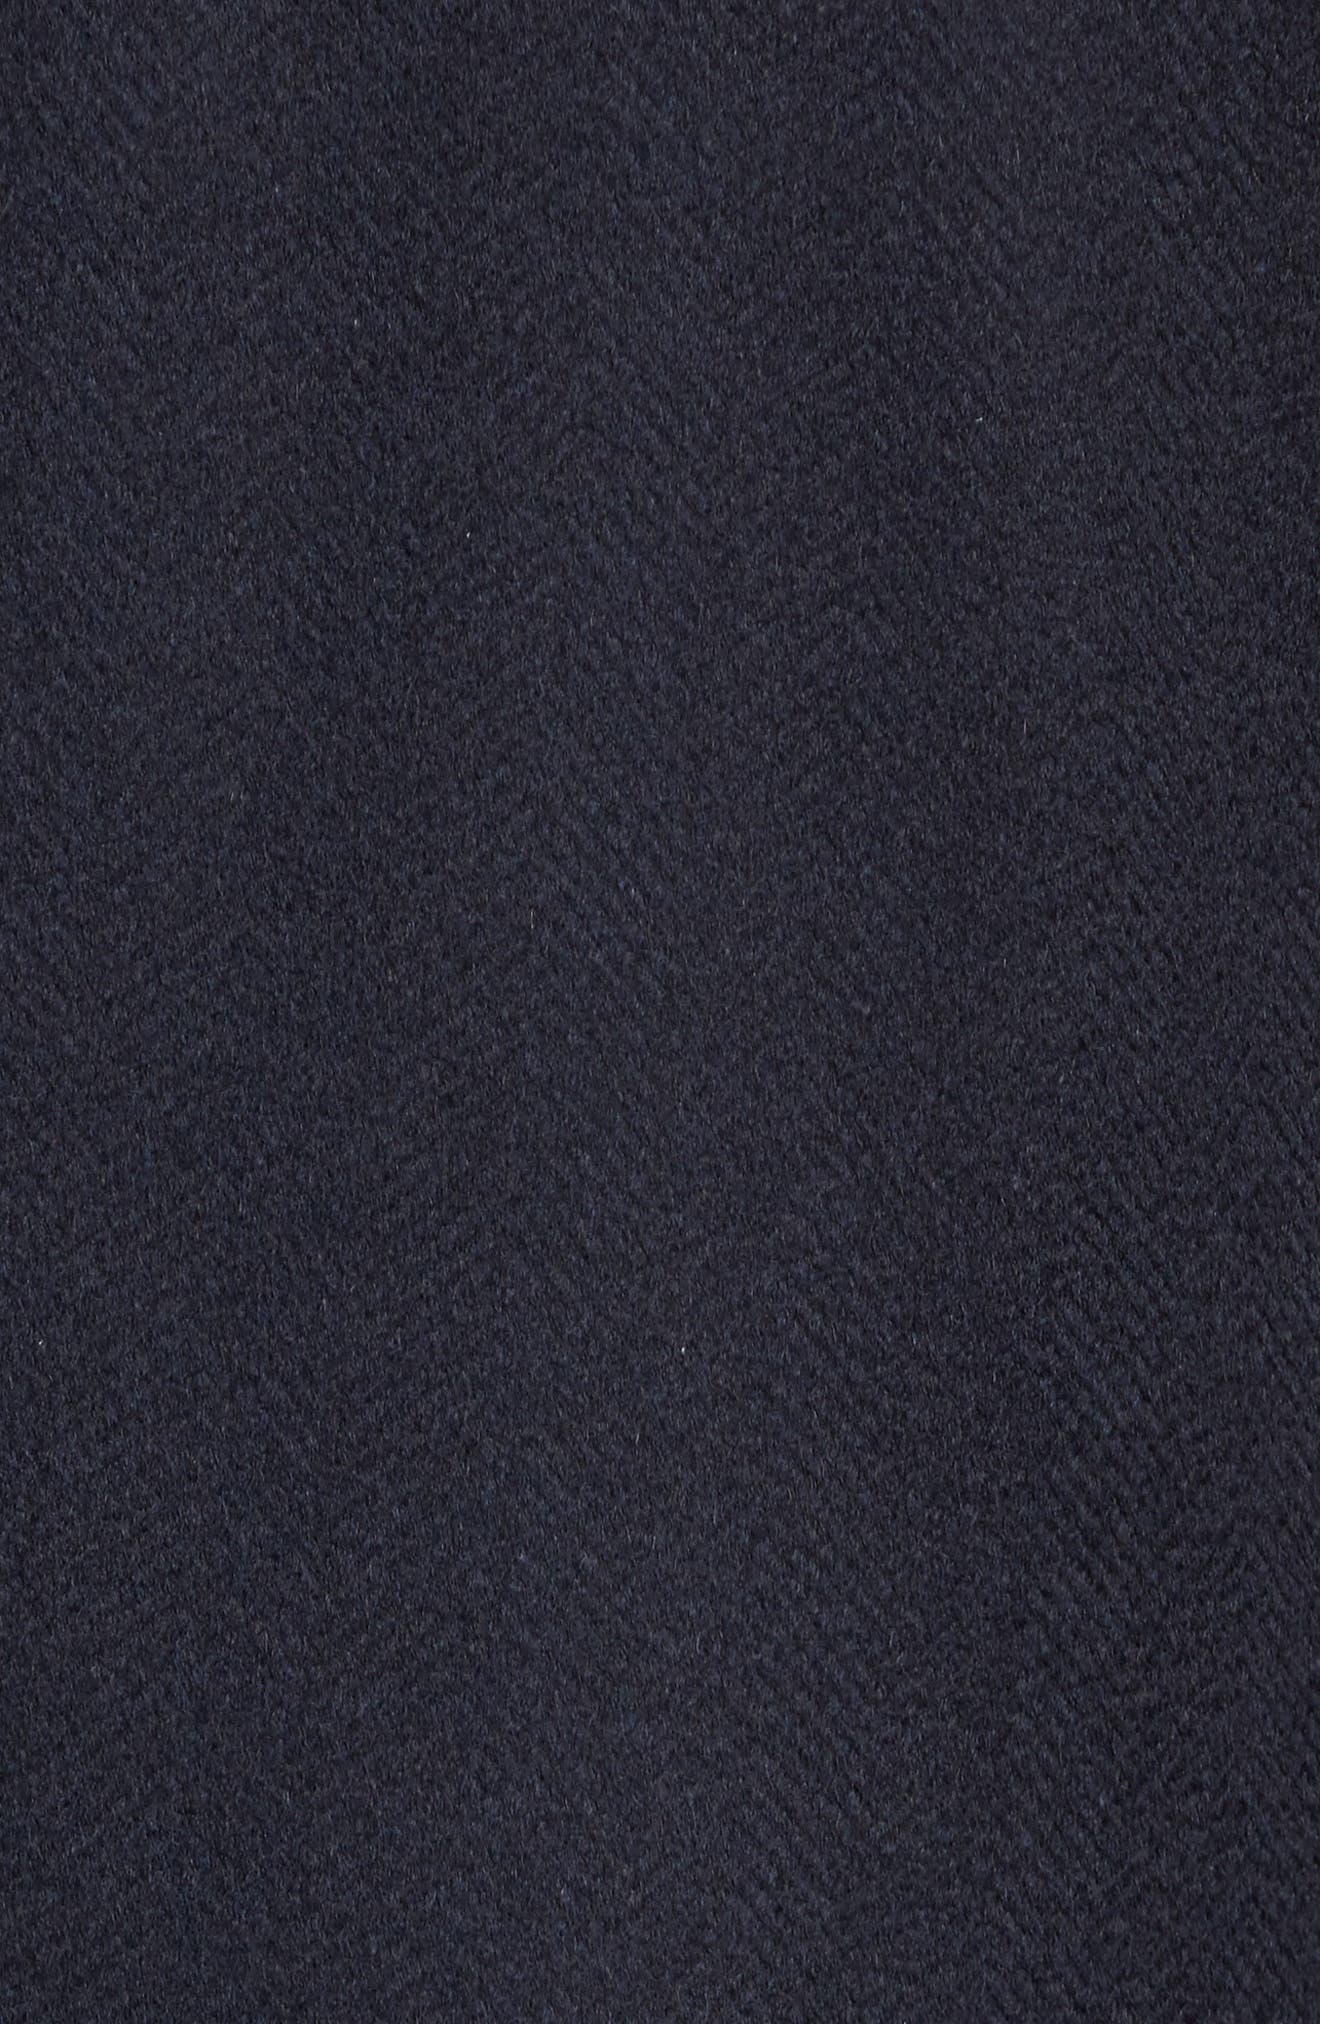 Culton Cashmere Overcoat,                             Alternate thumbnail 5, color,                             Navy